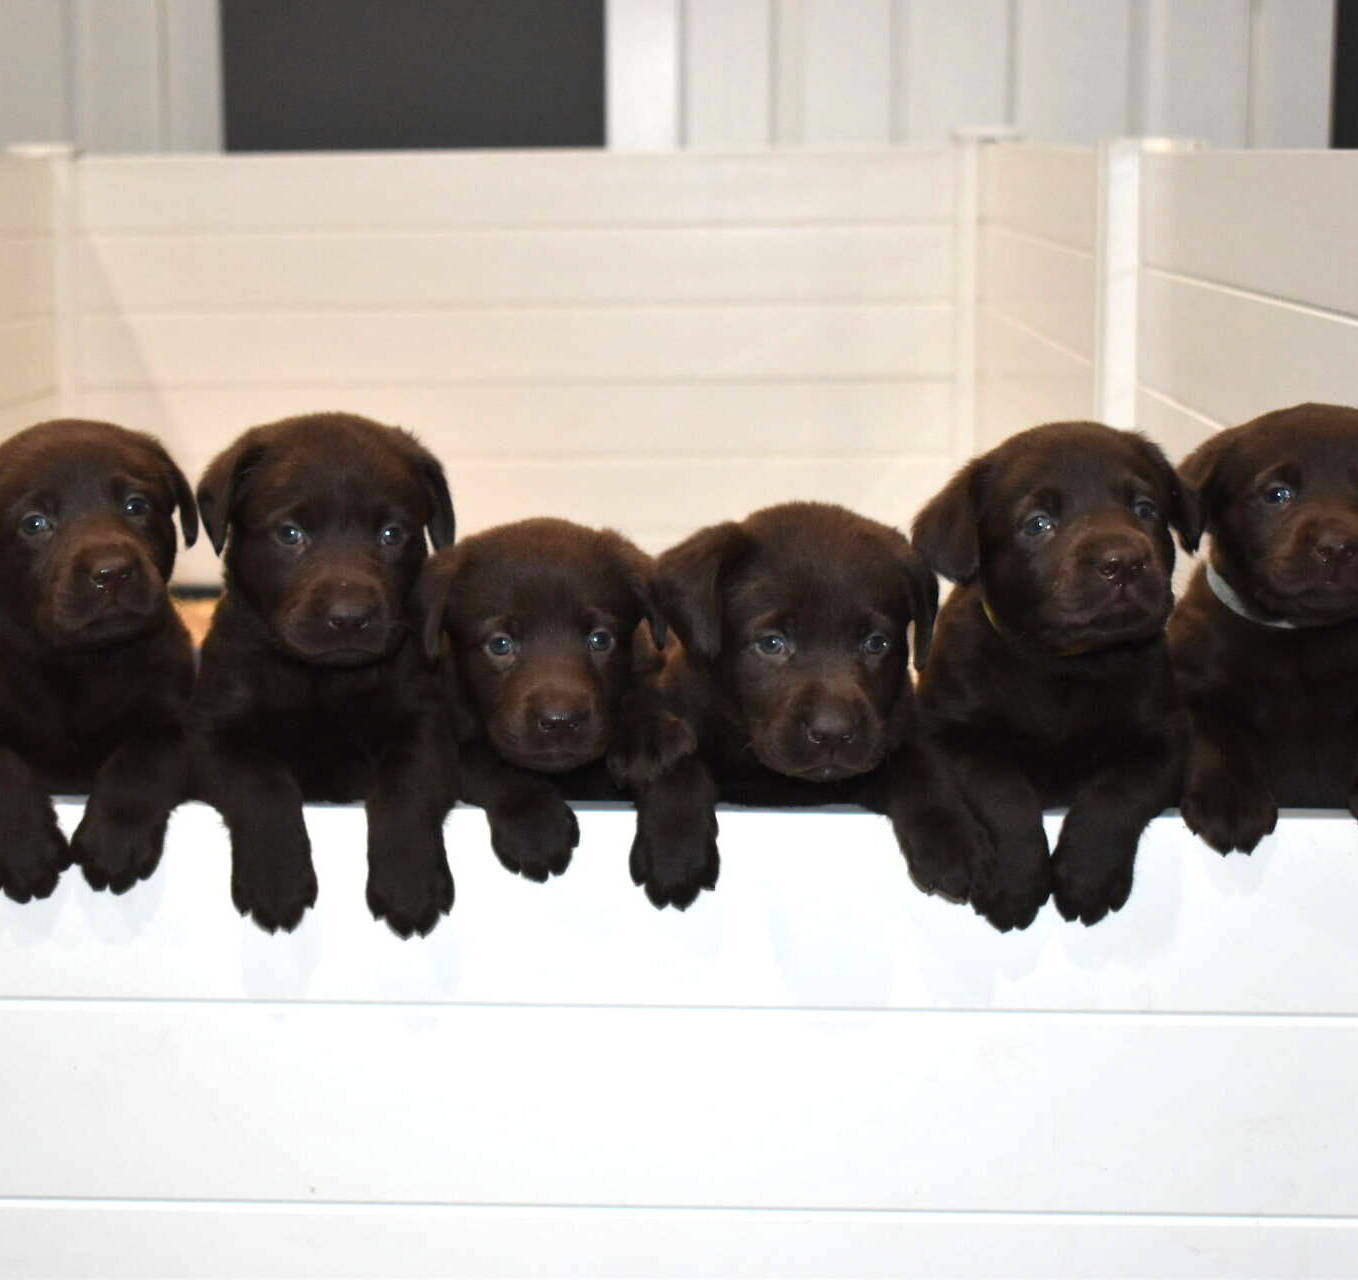 Litter 7-Chocolate labrador puppies3.JPG